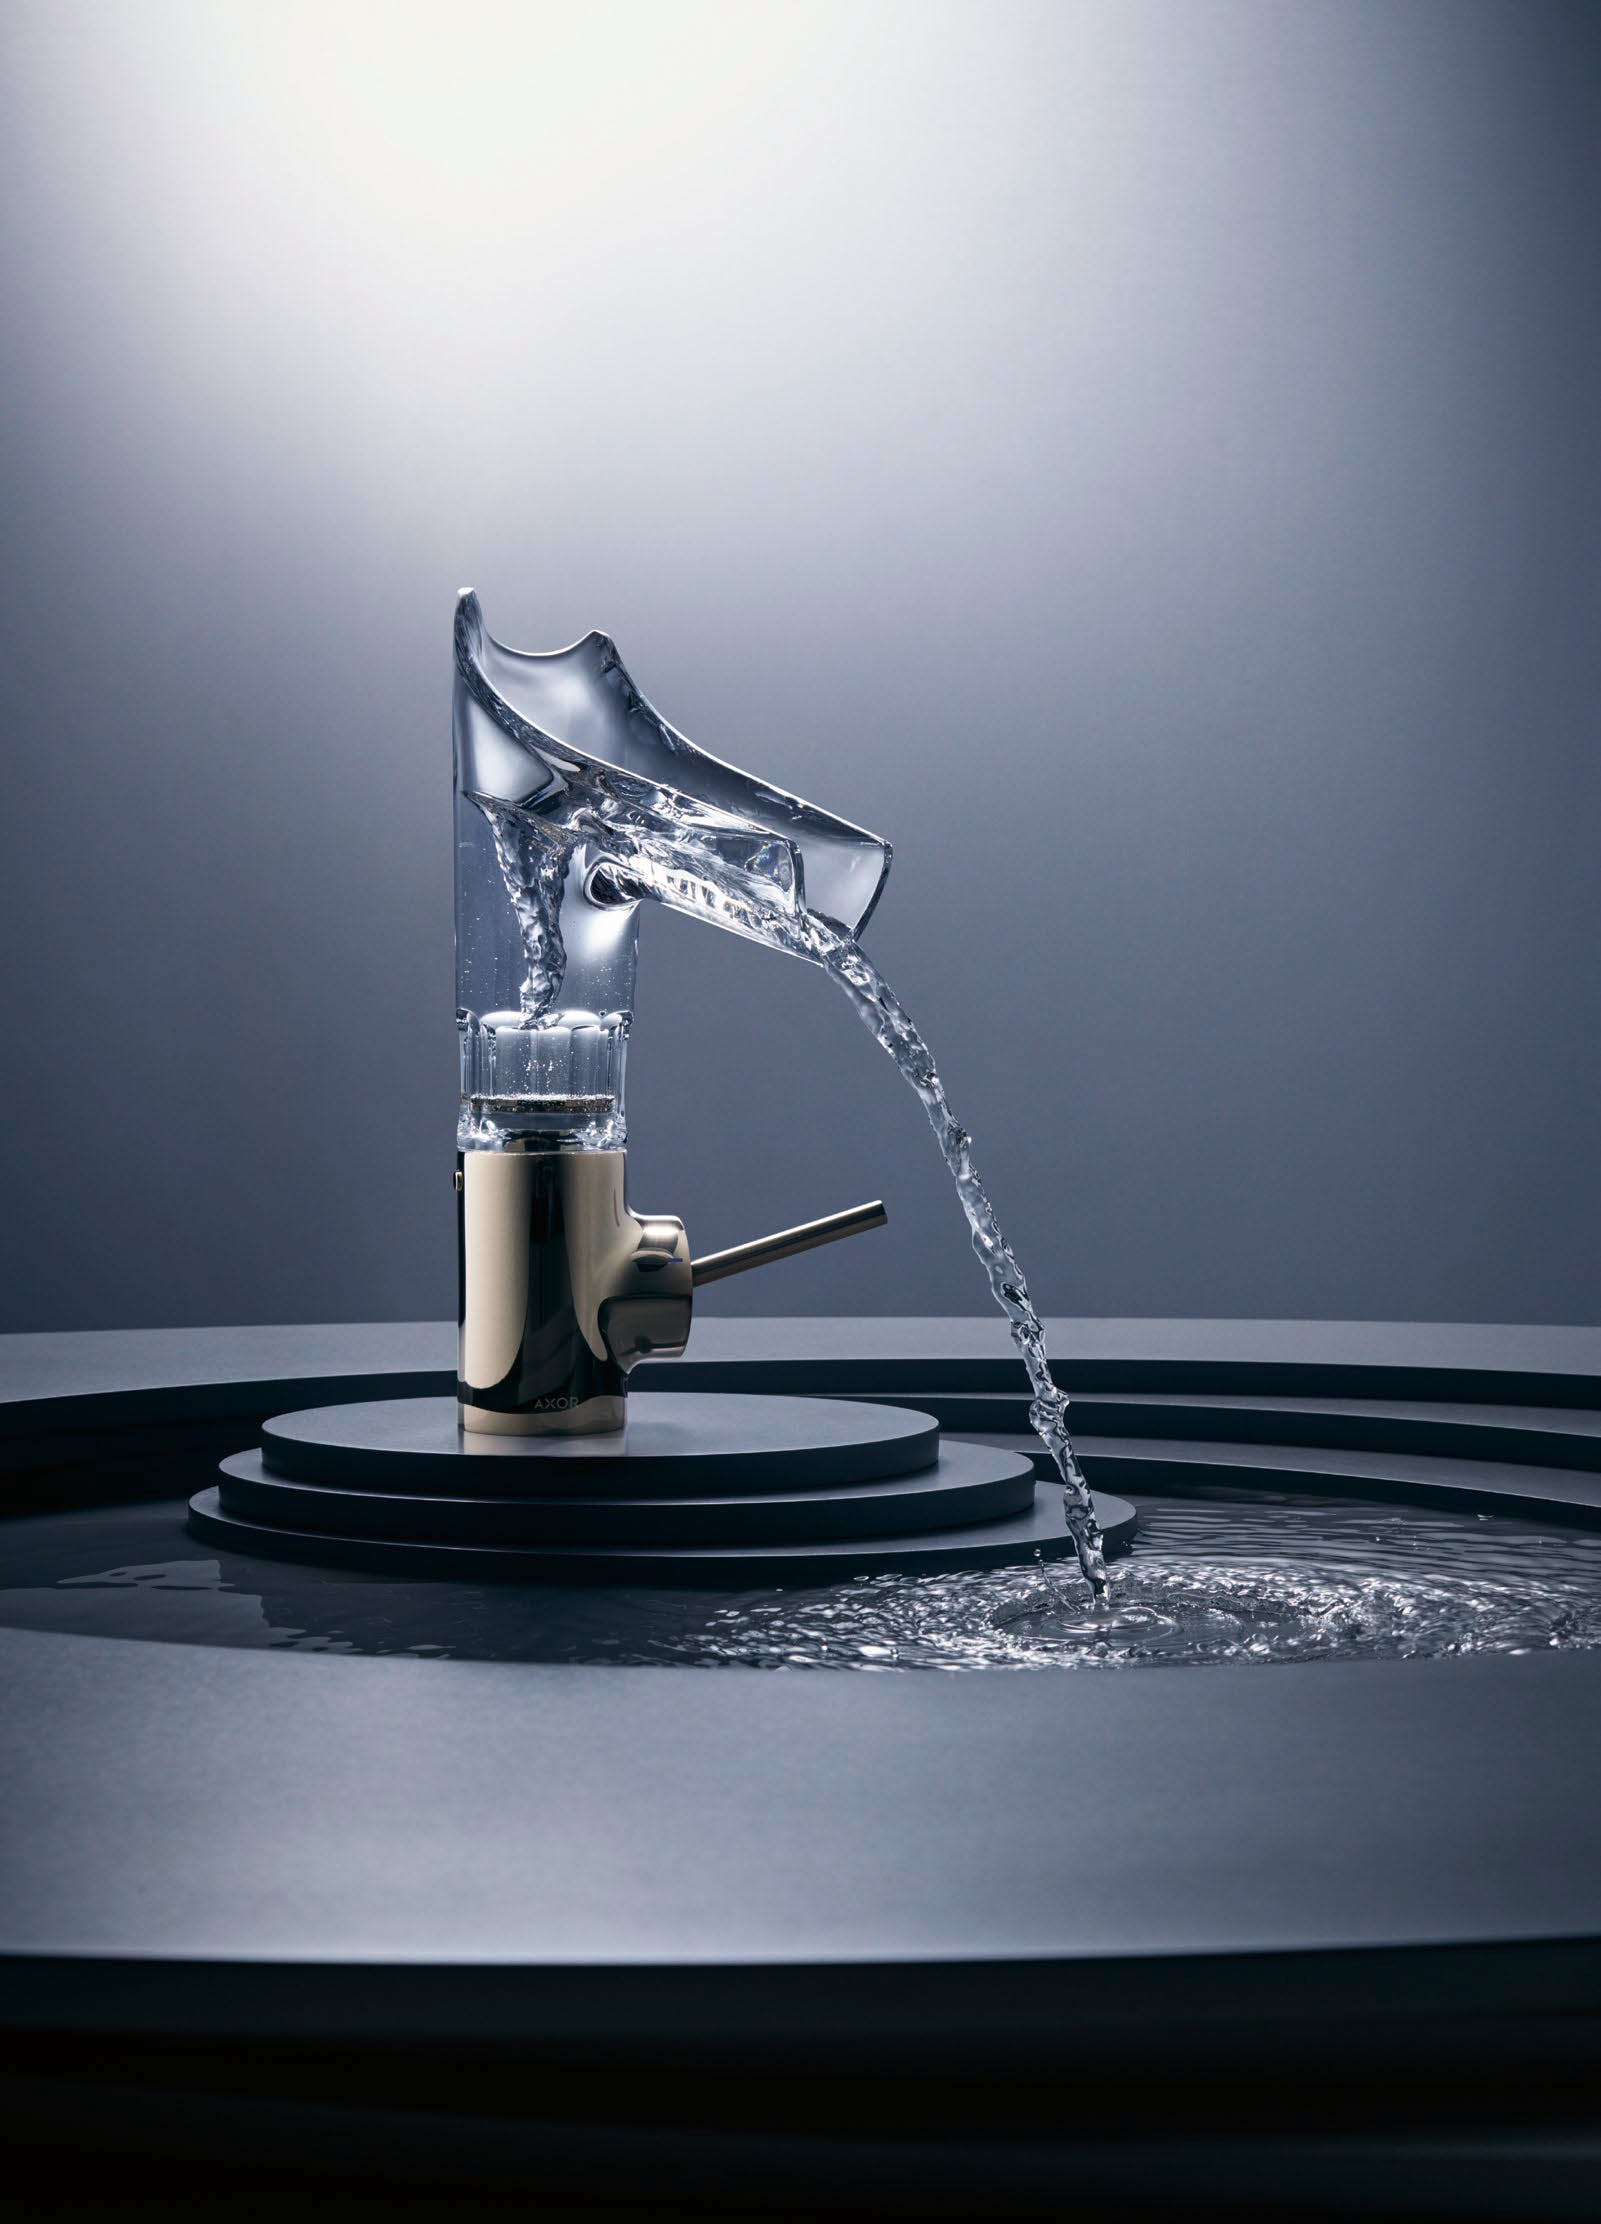 Gold AXOR tap with running water